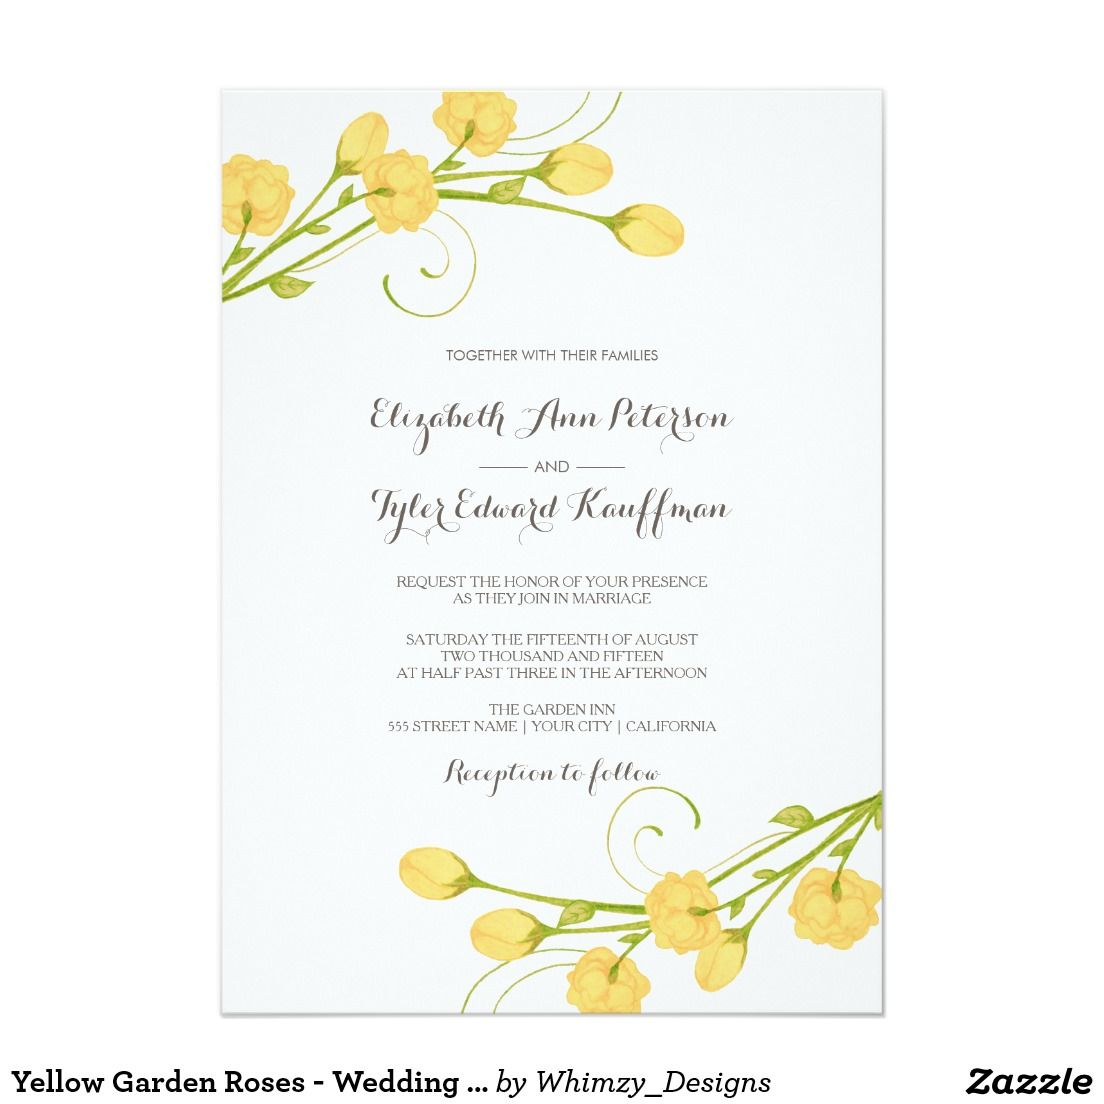 Yellow garden roses wedding invitation rose wedding garden yellow garden roses wedding invitation stopboris Gallery